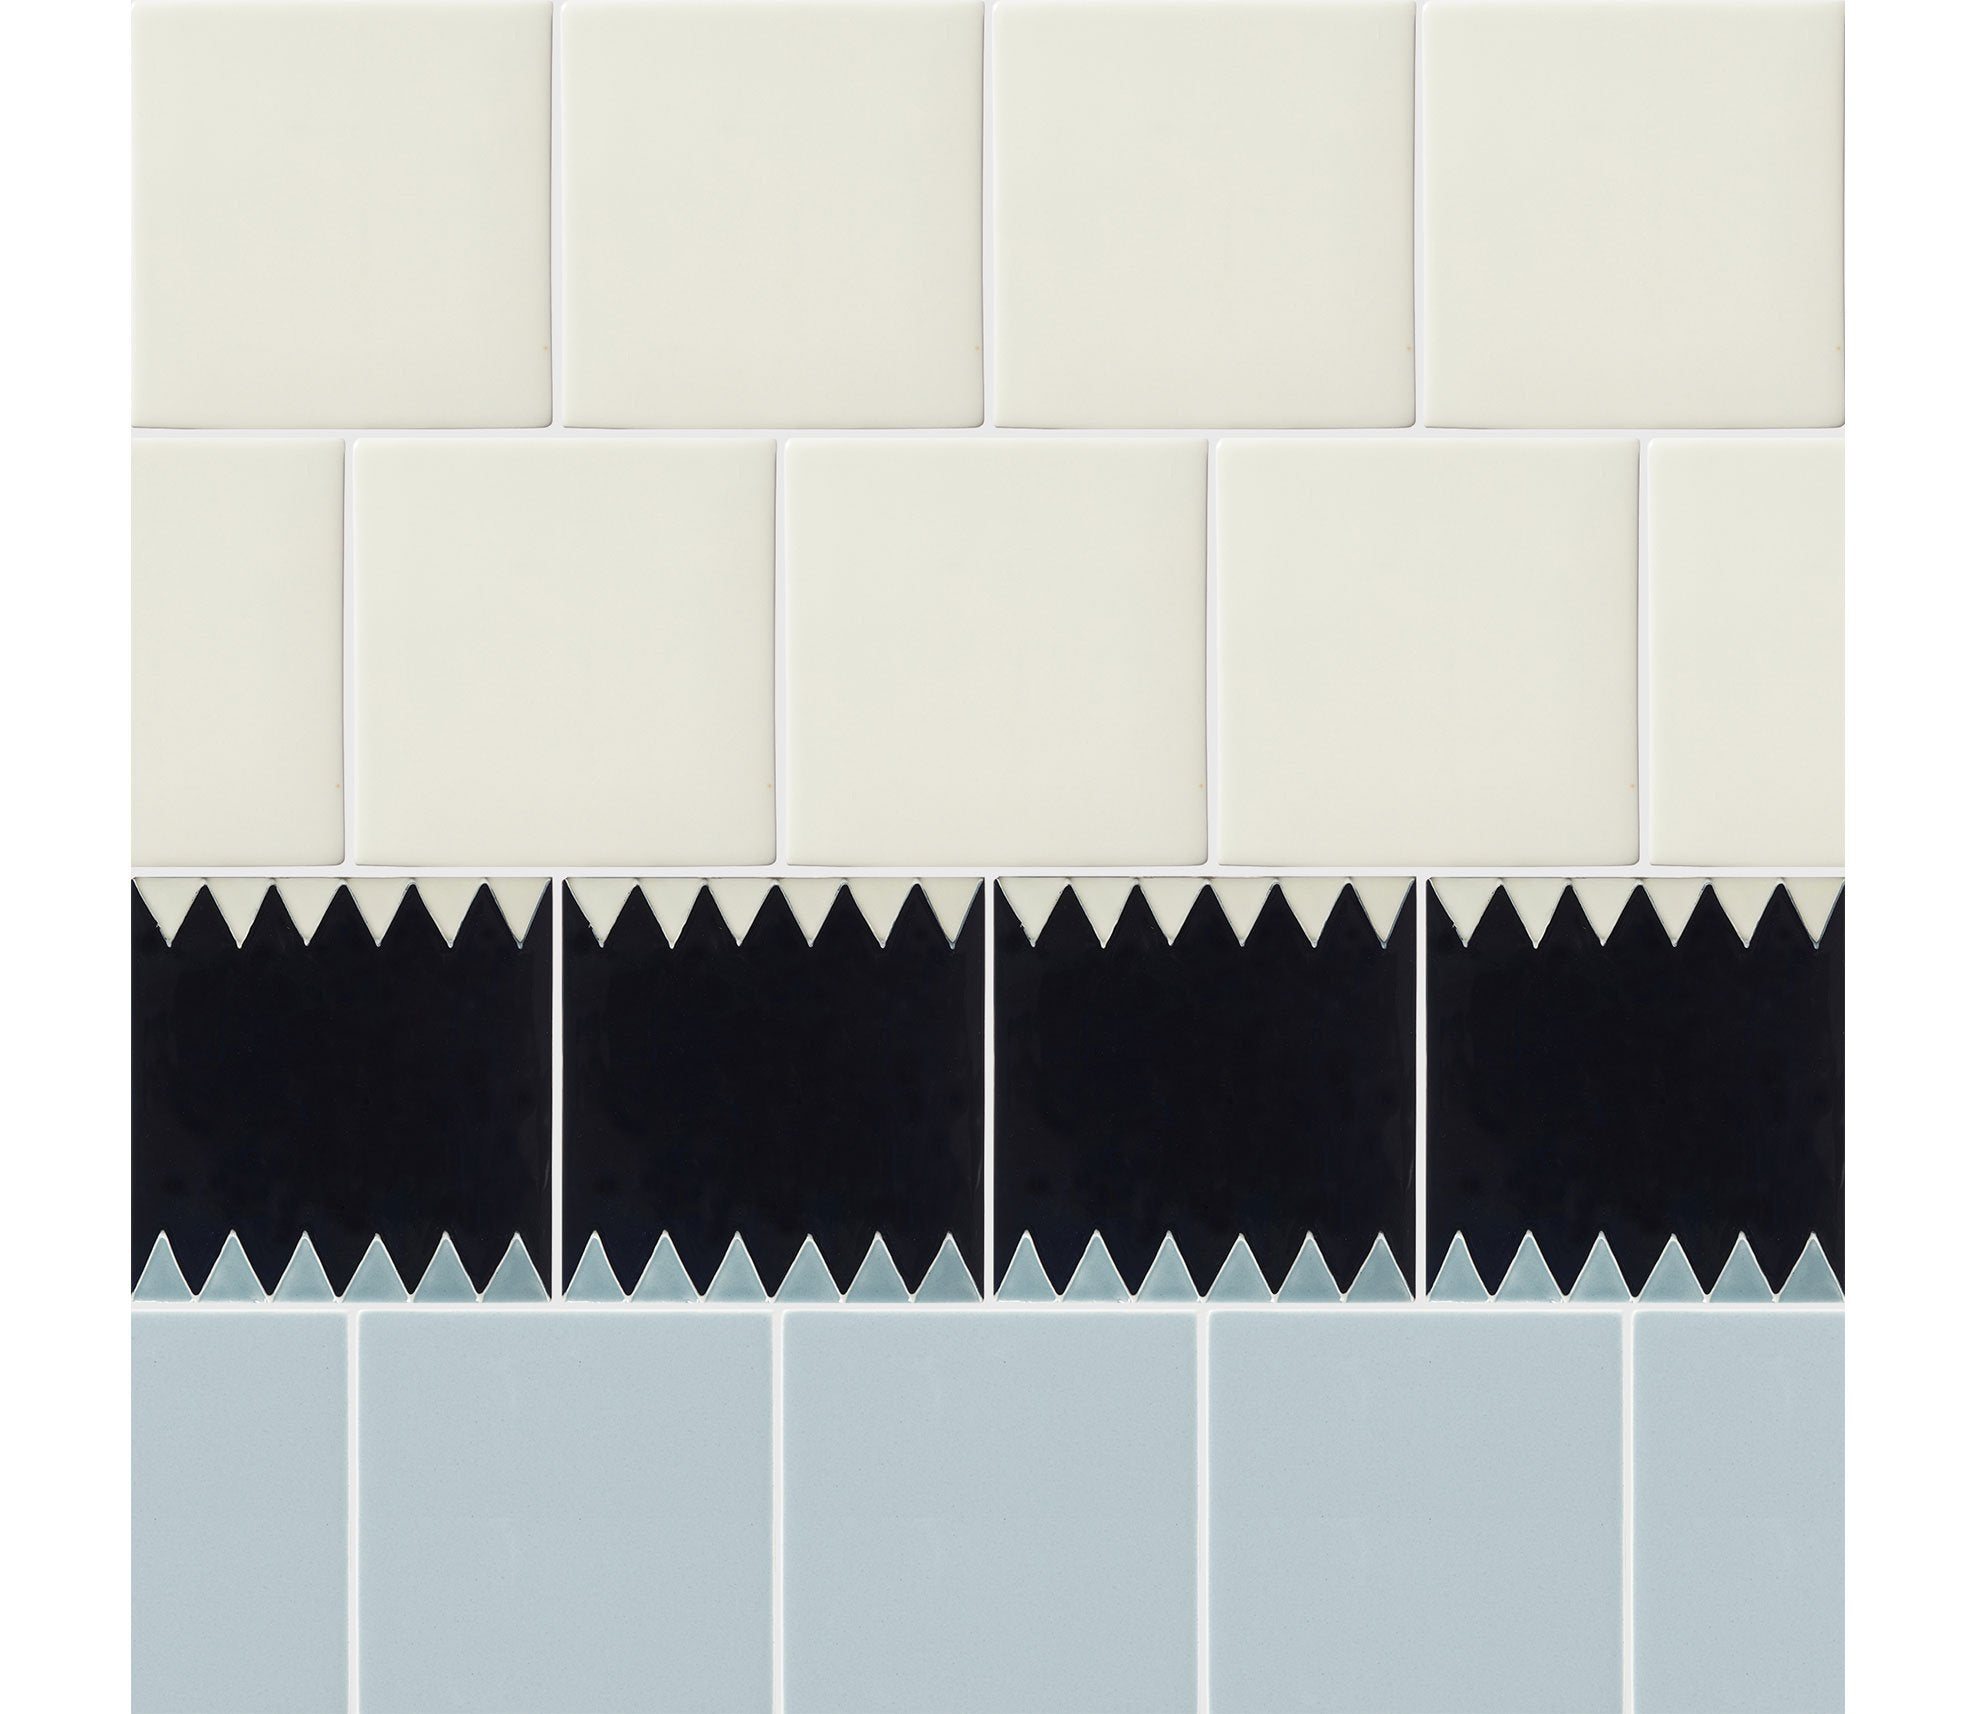 Hanley Tube Lined Decorative Tiles Product Image 42